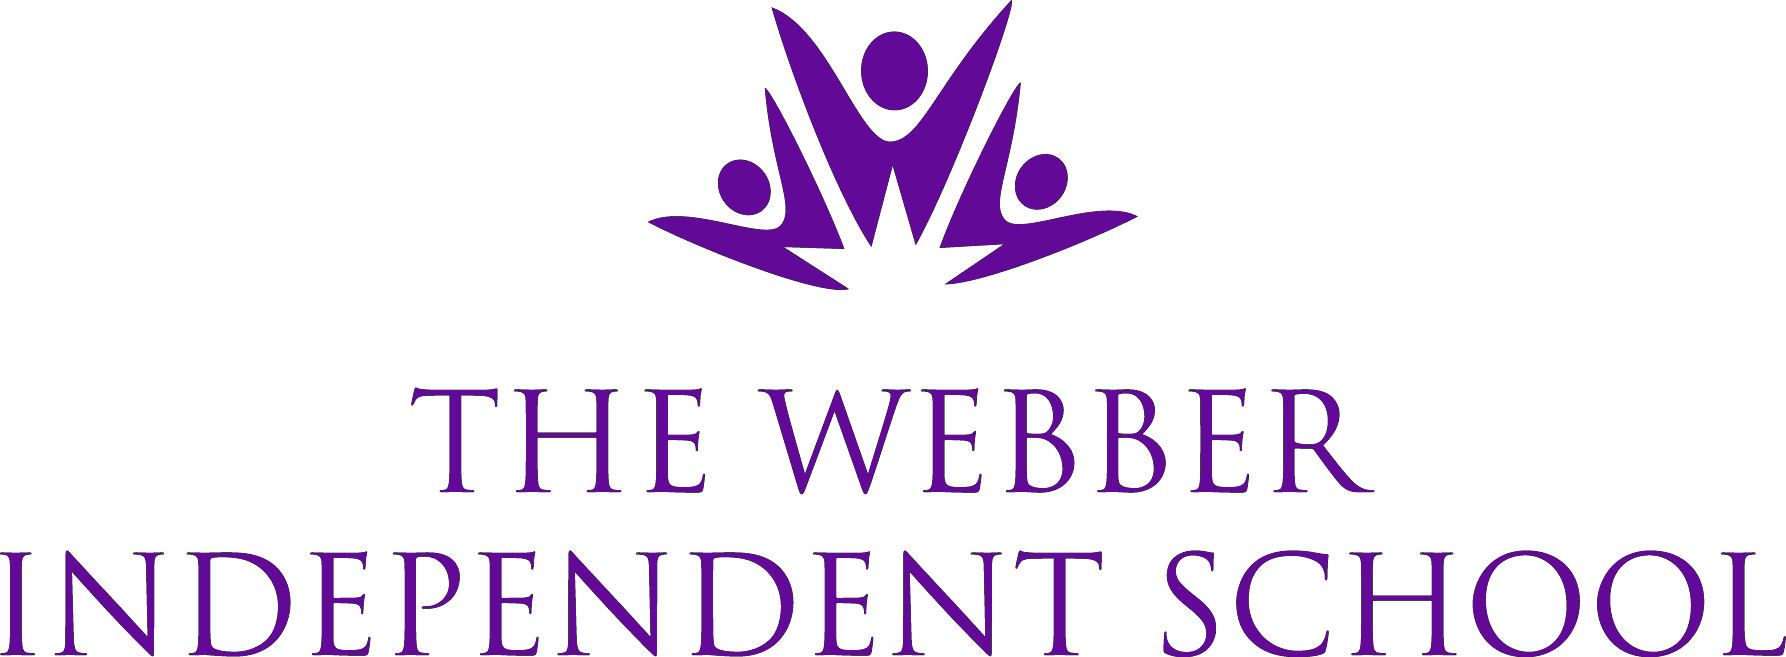 The Webber Independent School Logo